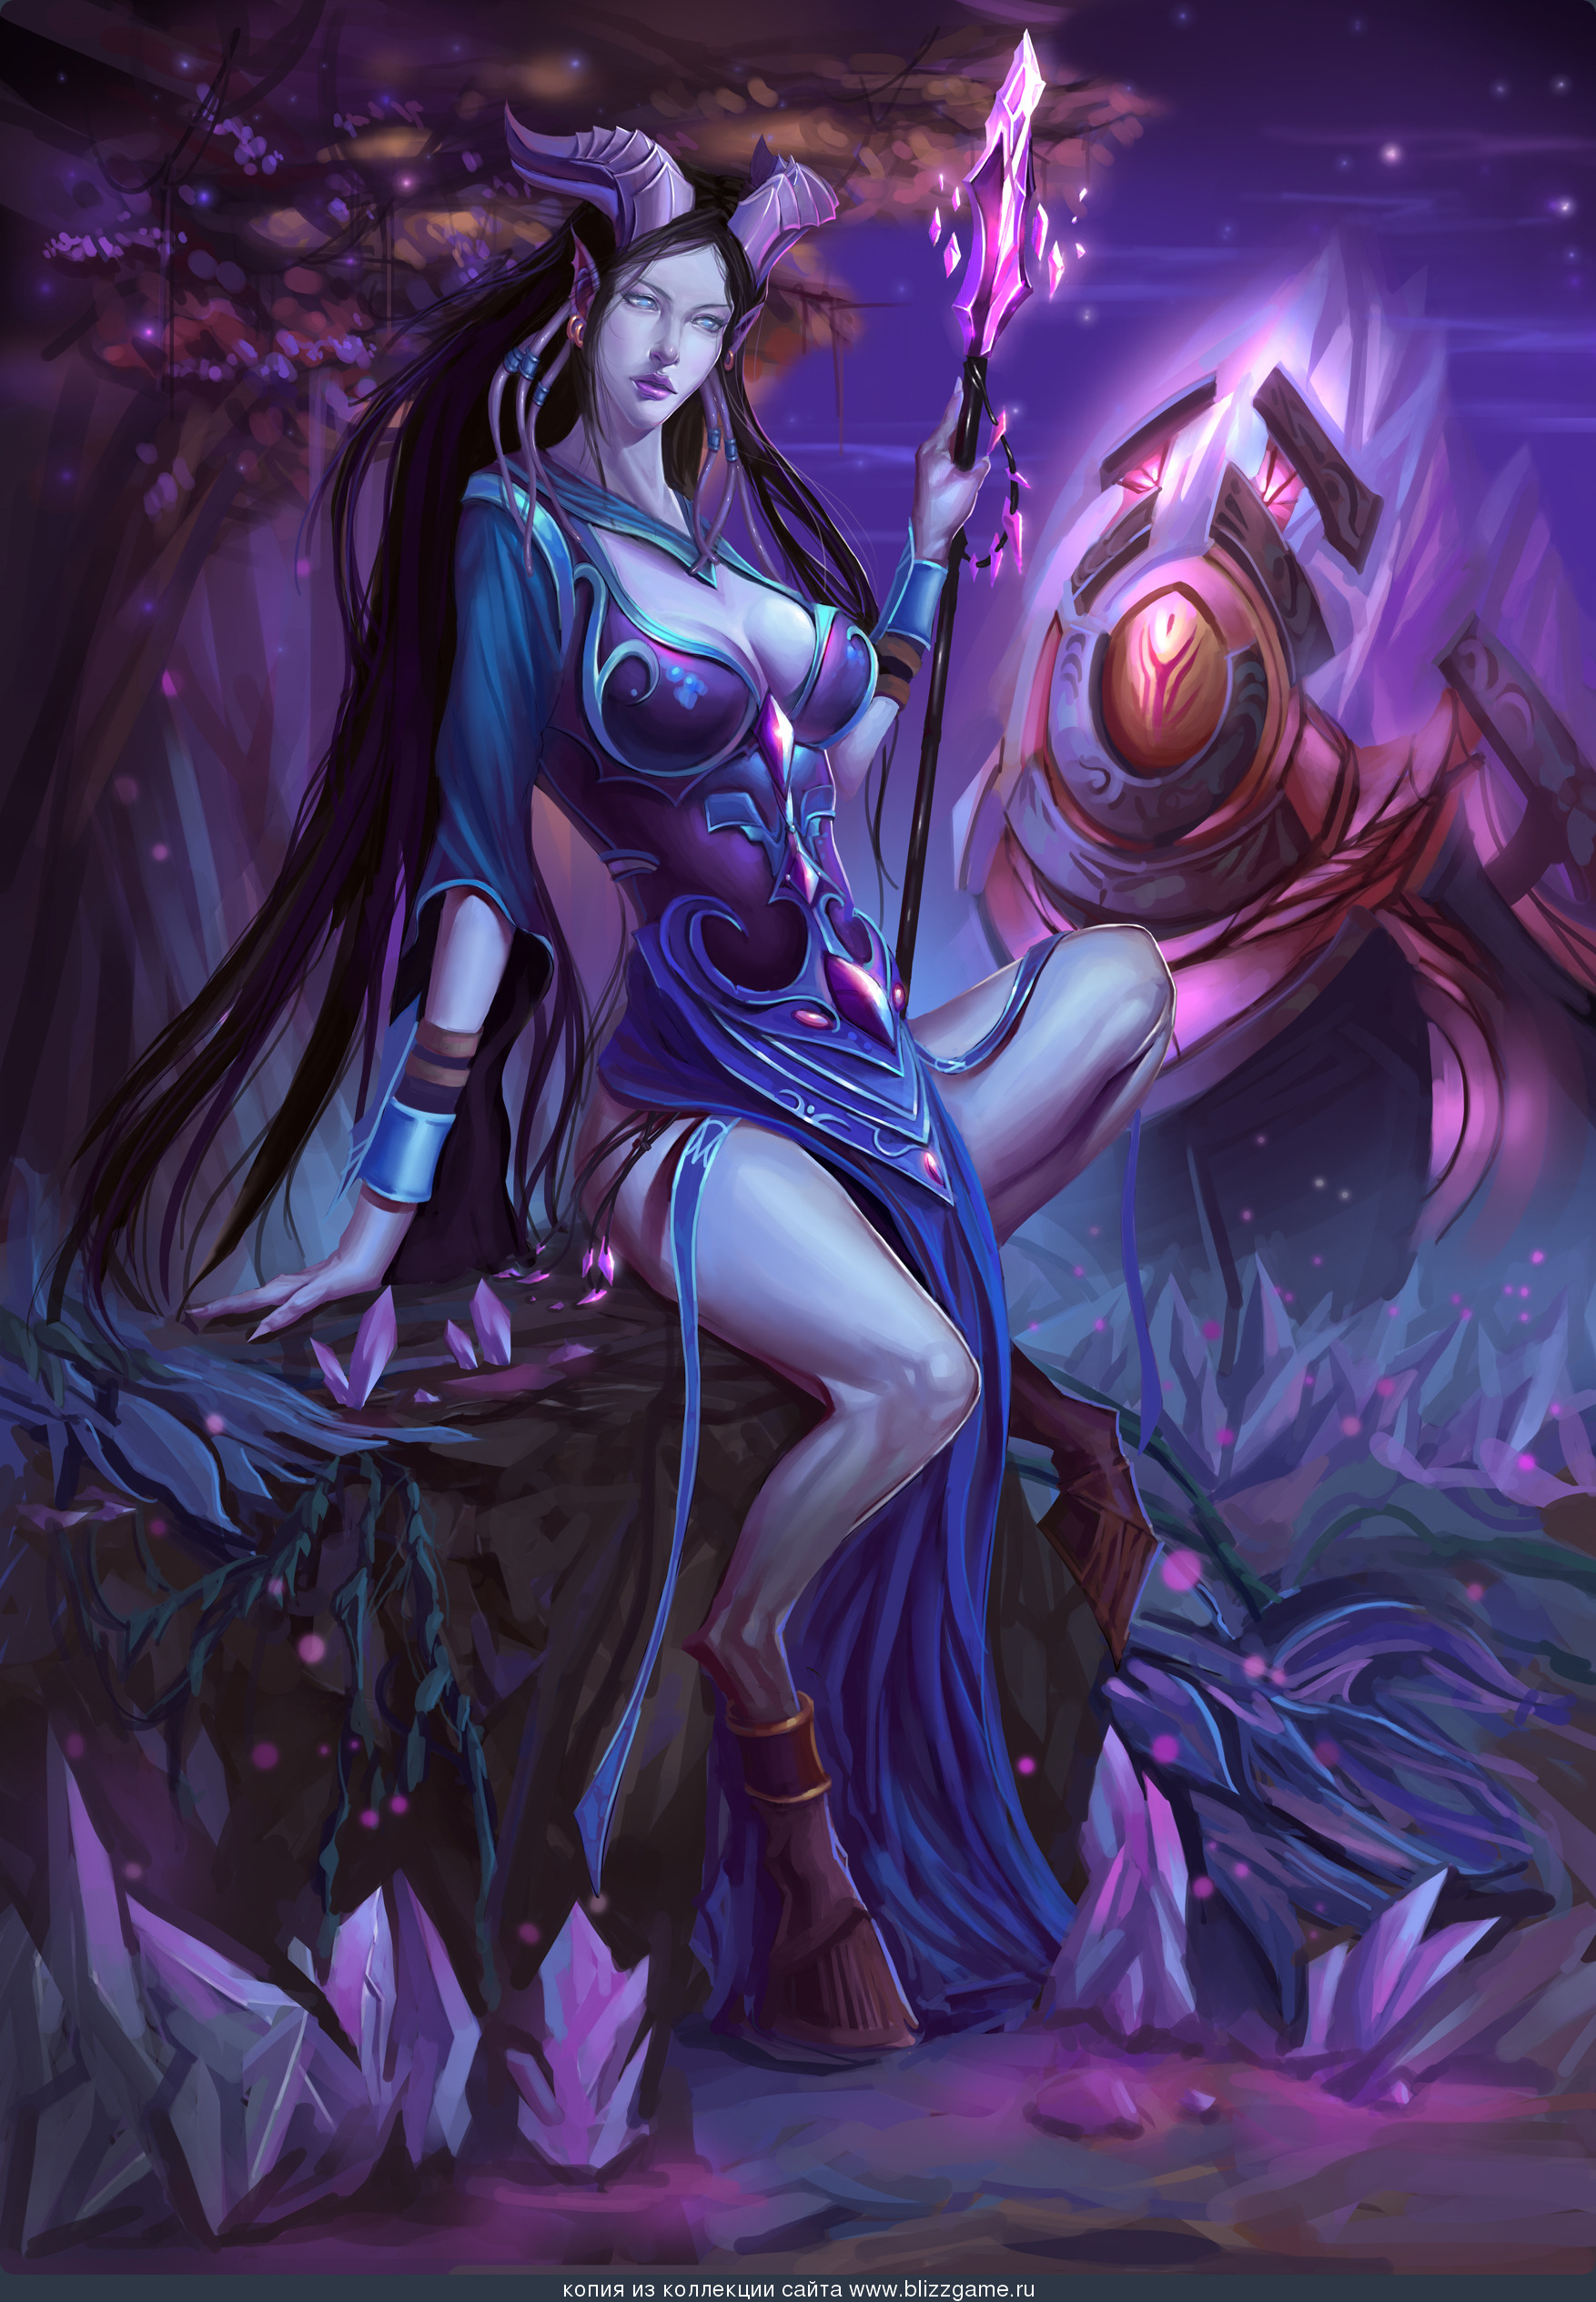 World of warcraft hottest draenei girl naked comic